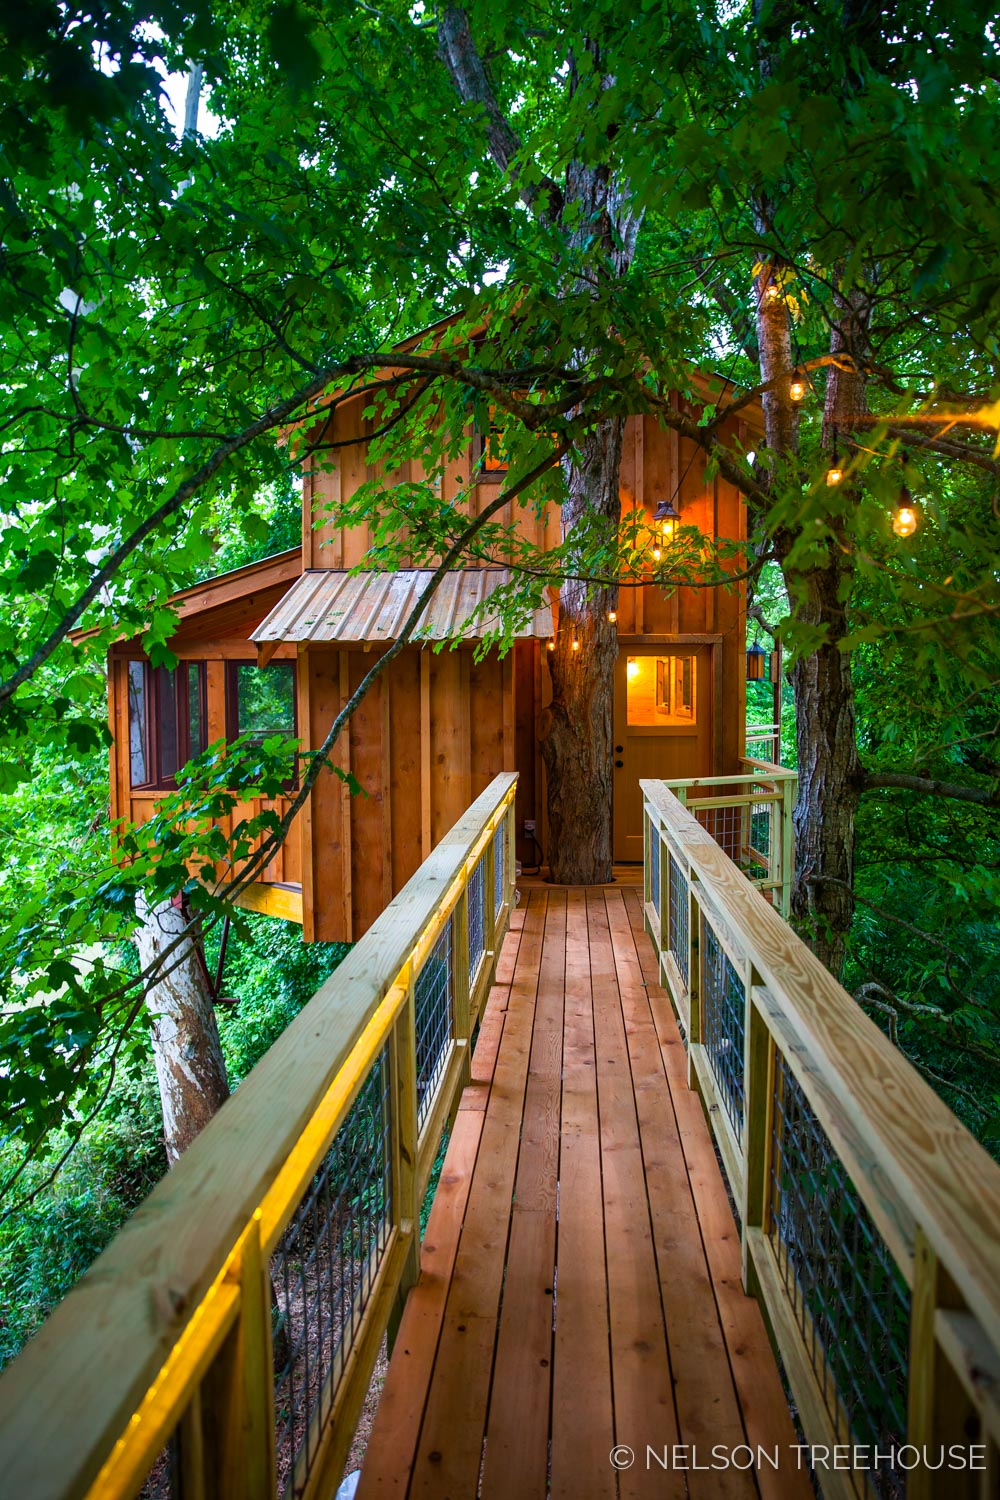 TenNessee Riverbank Treehouse Facade